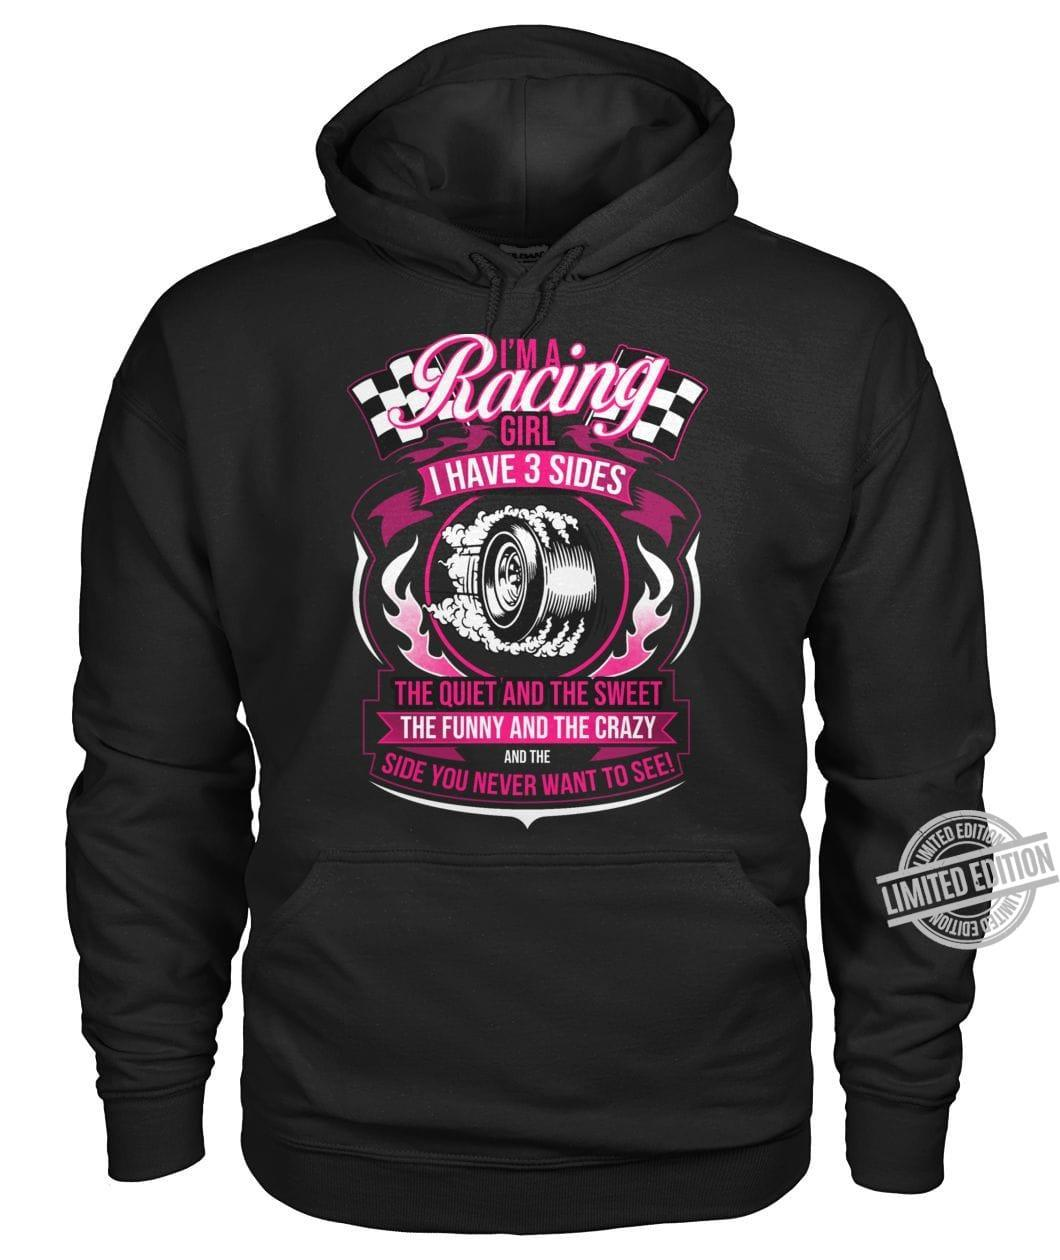 I'm A Racing Girl I Have 3 Sides The Quiet And Sweet The Funny And The Crazy And The Side You Never Want To See Shirt